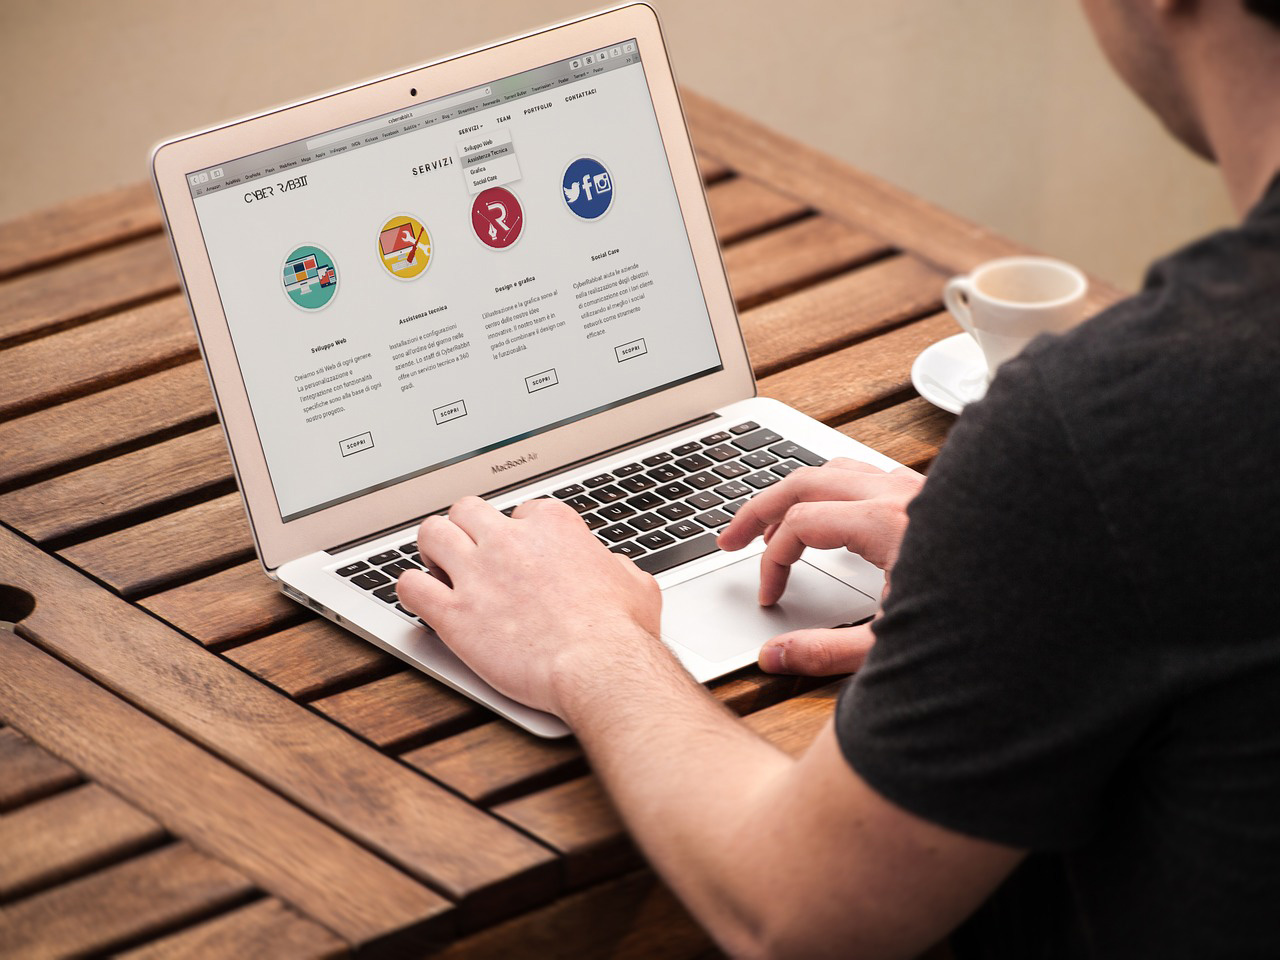 5-Windows-software-programs-every-website-designer-needs-to-know-about